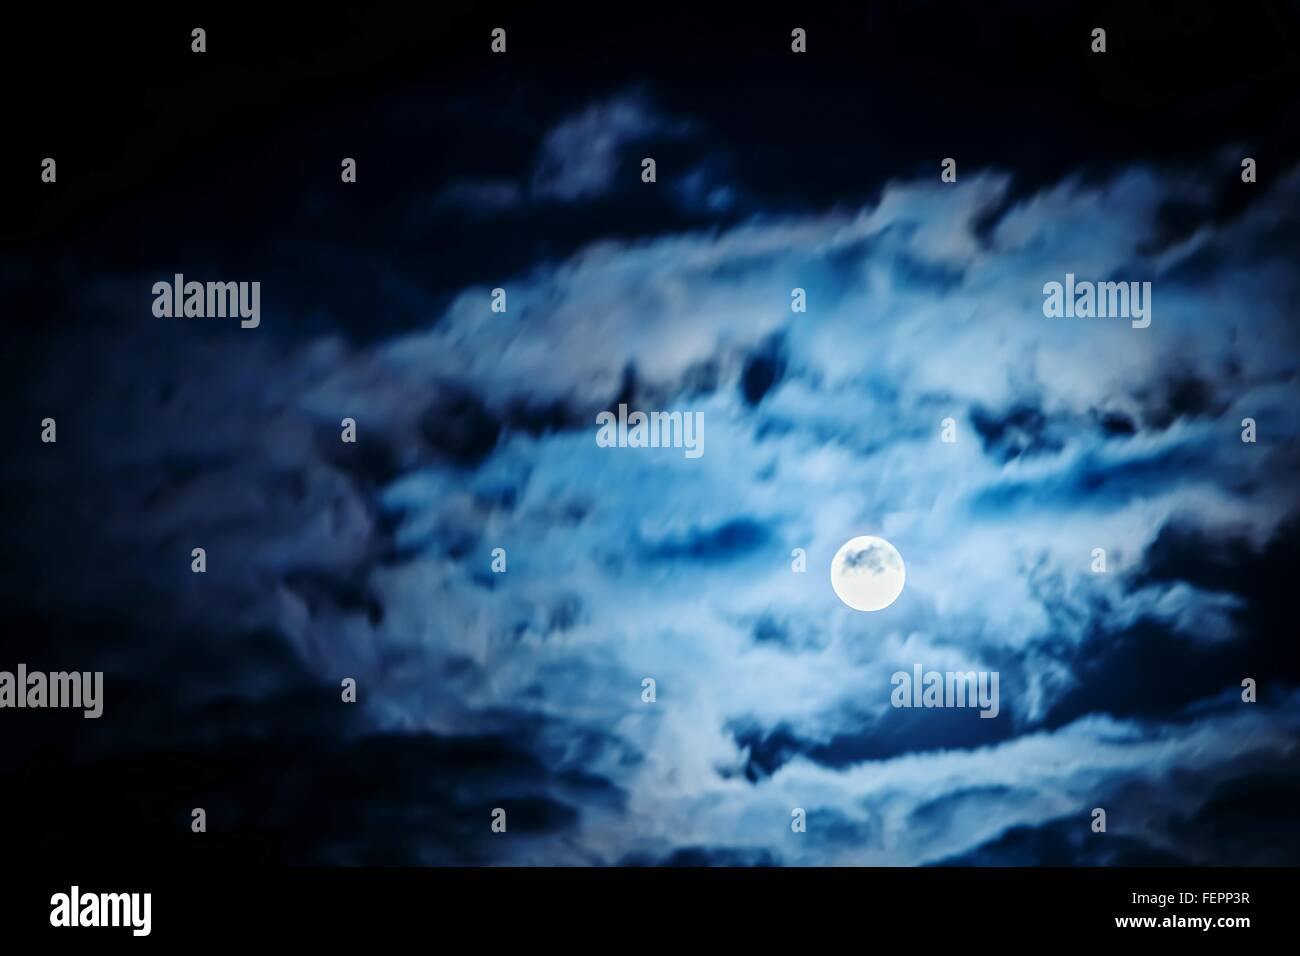 Low Angle View Of Moon In Cloudy Sky - Stock Image